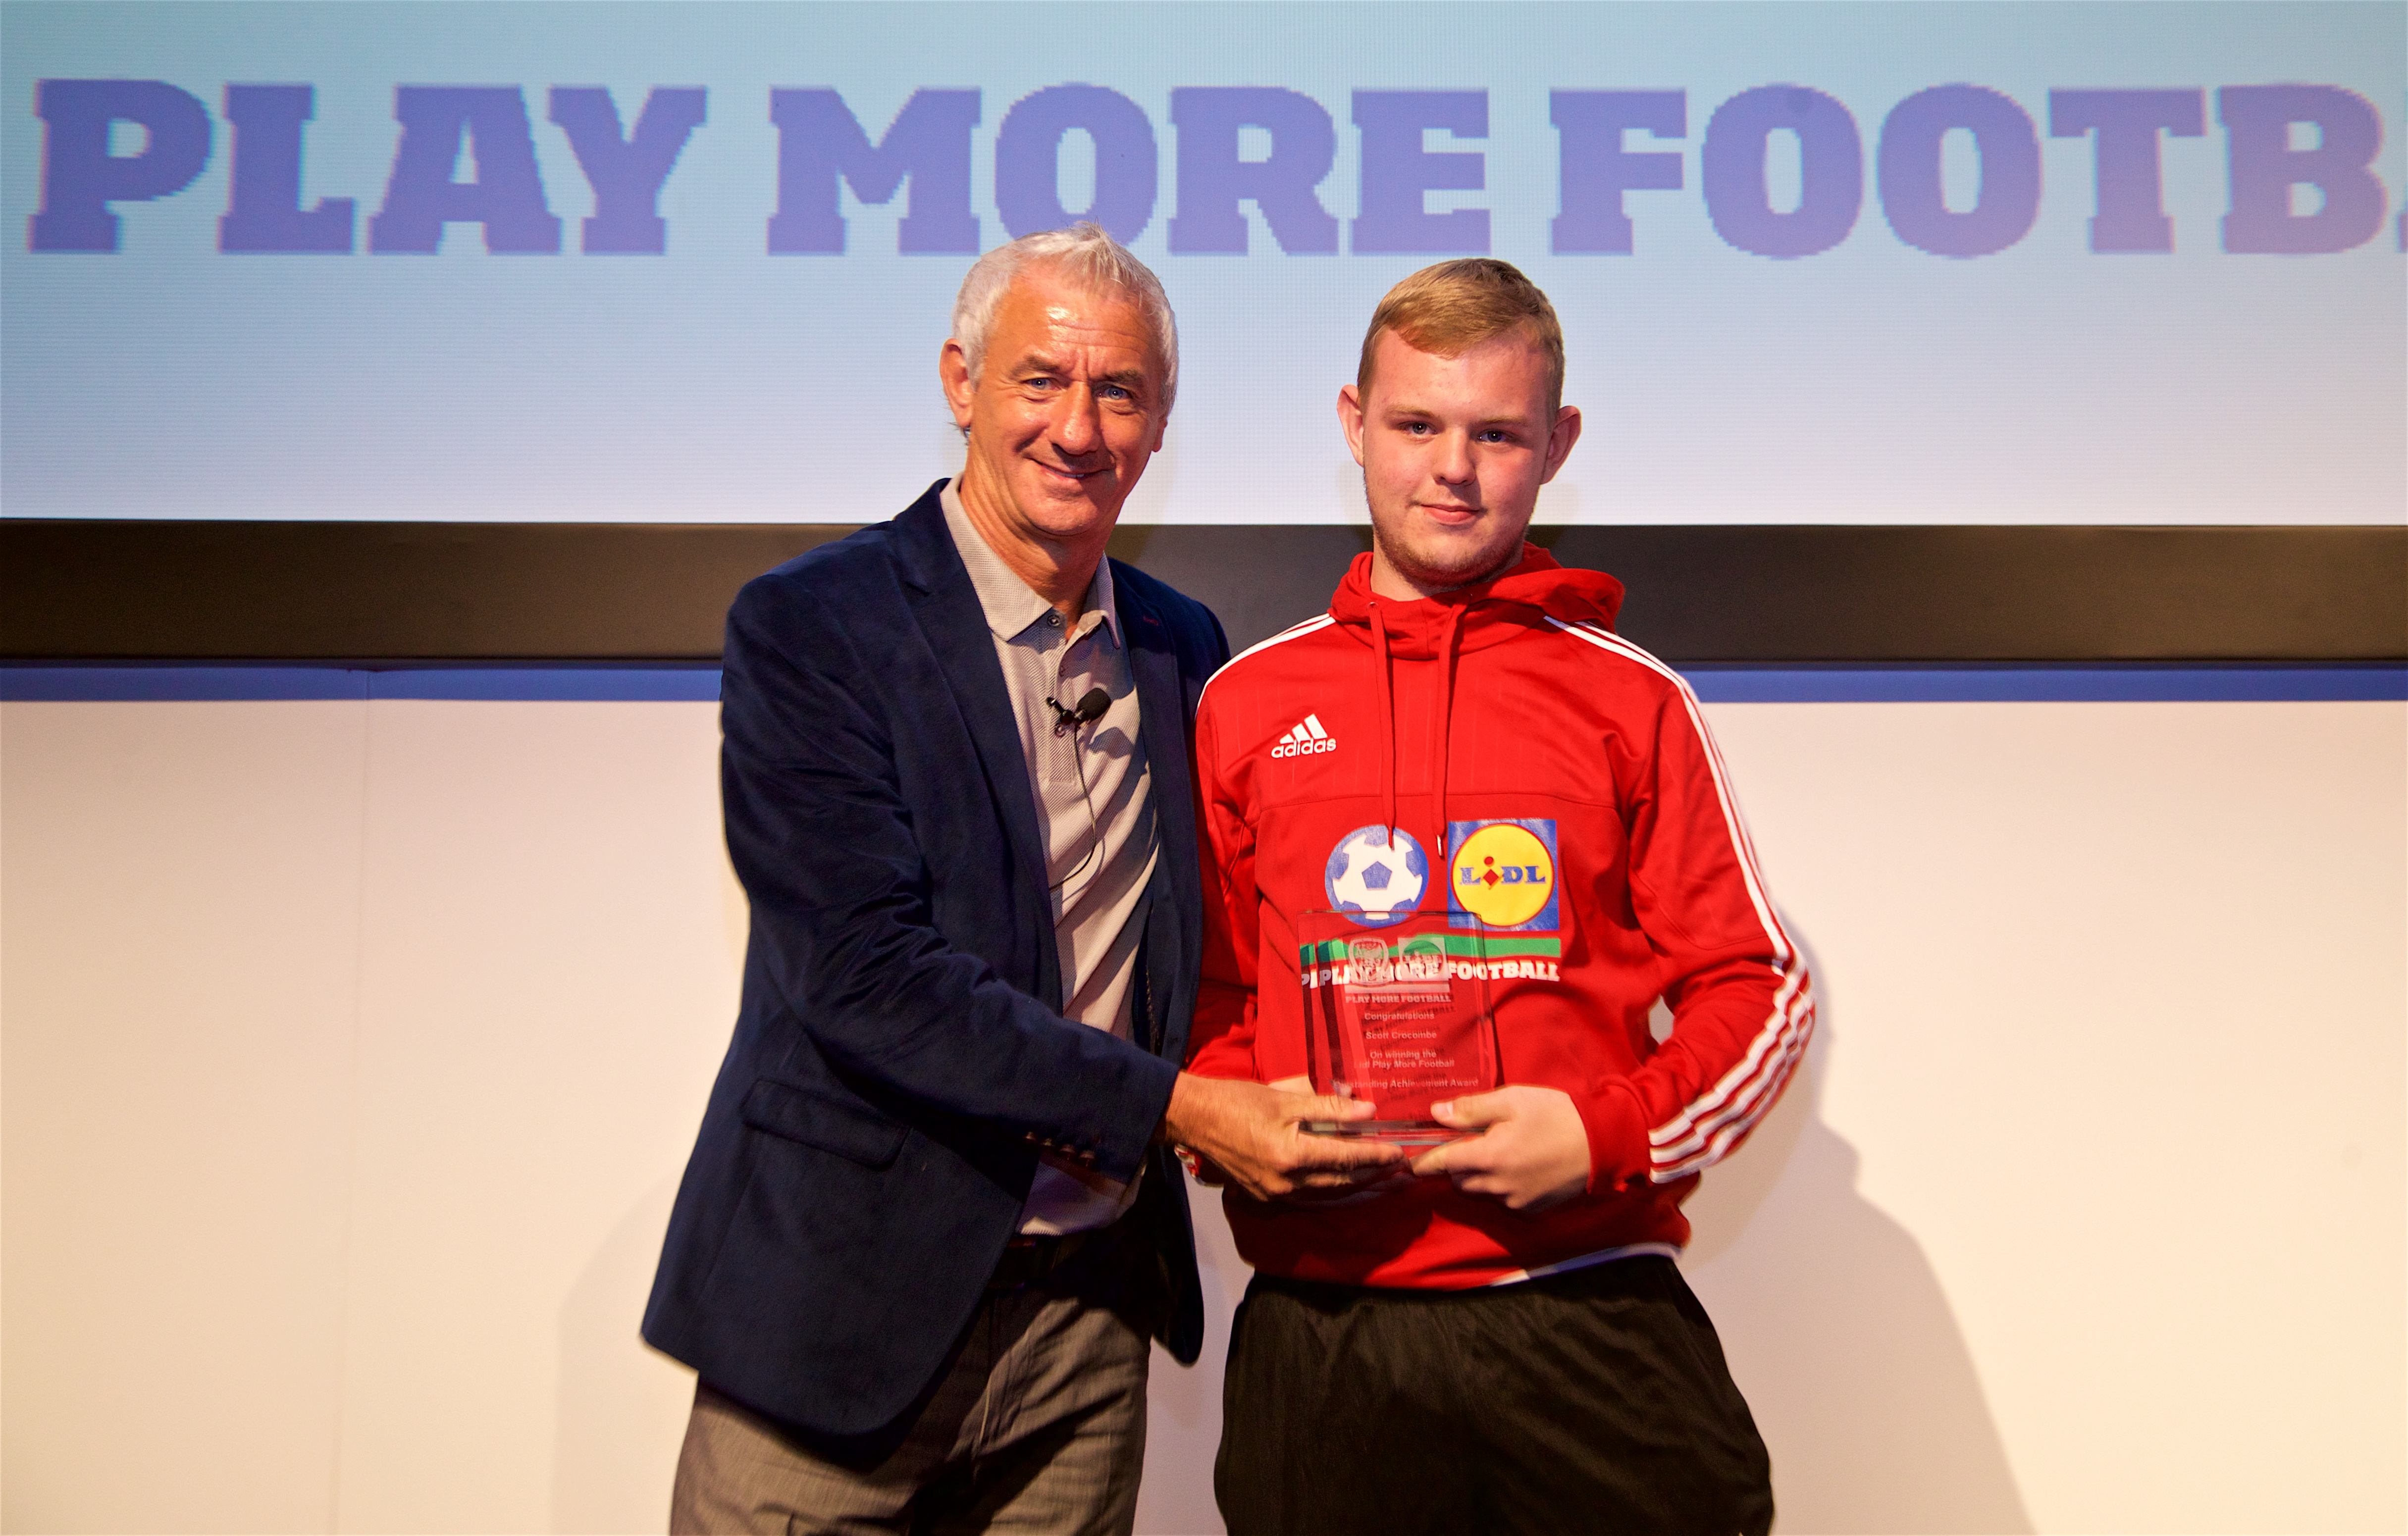 Ian Rush presents Lidl Play More Football Awards to delighted winners